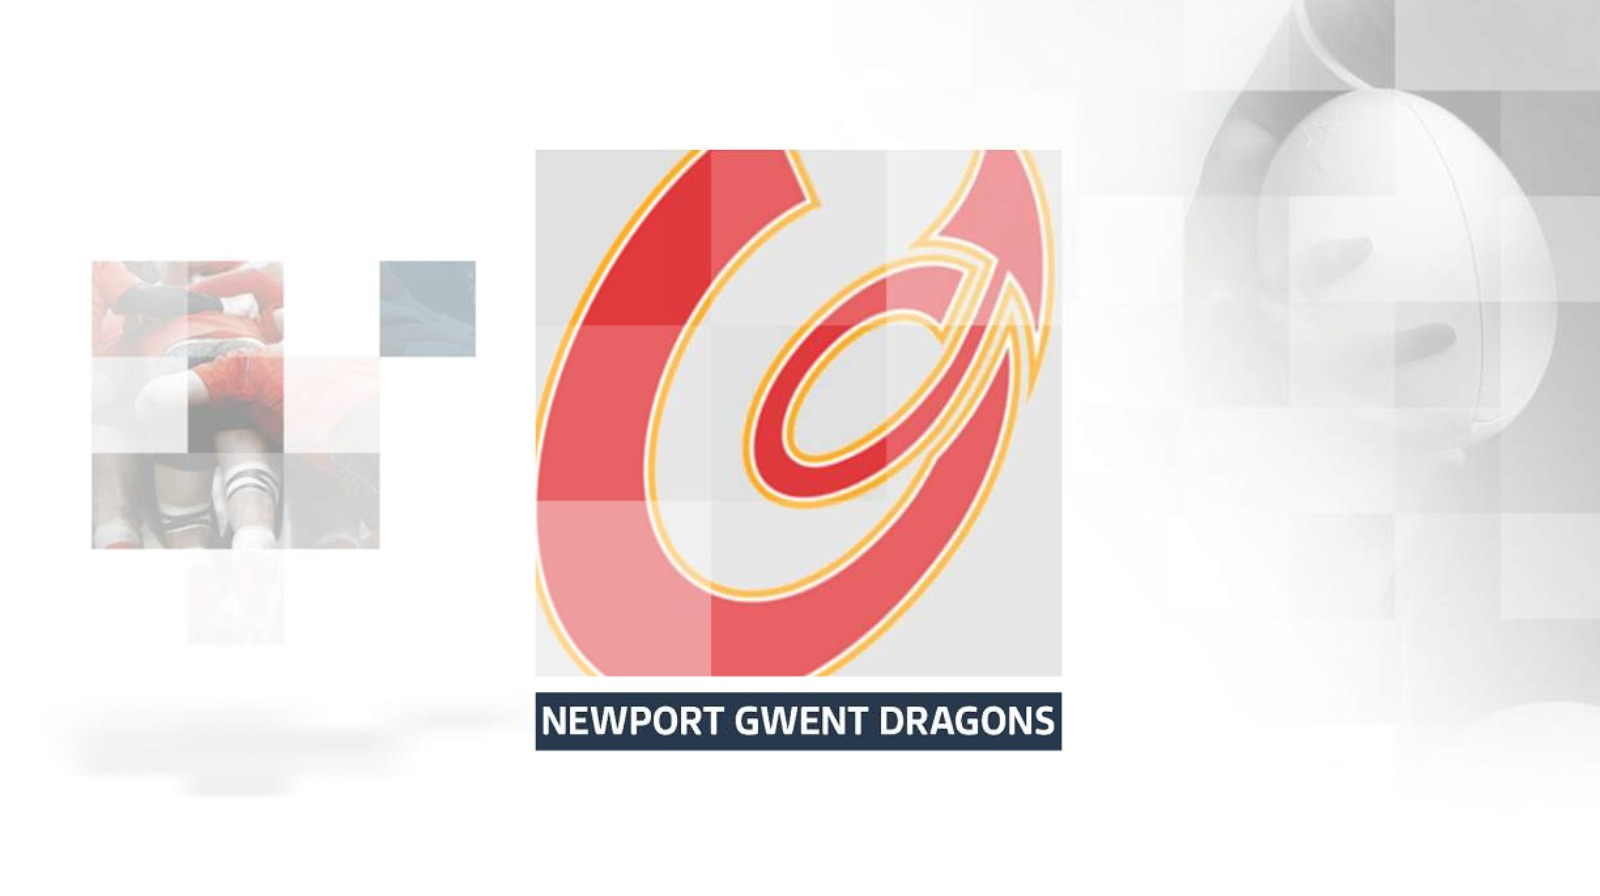 ft newport gwent dragons 21 26 connacht wales itv news. Black Bedroom Furniture Sets. Home Design Ideas